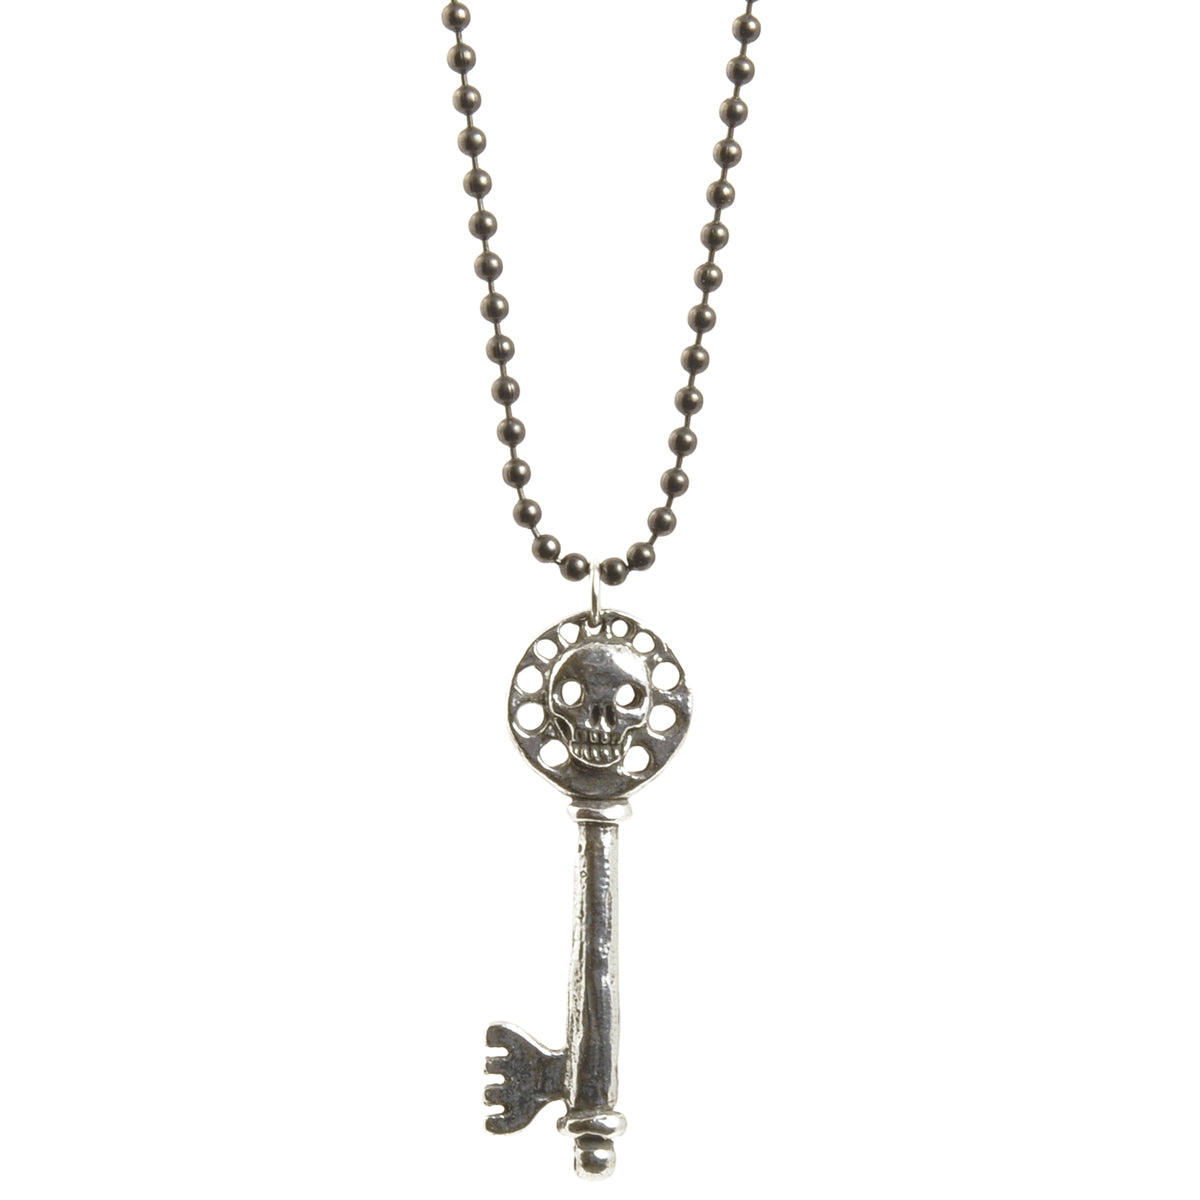 Simple-Antique Pewter Skull Key Ball Chain Necklace-30 Inches